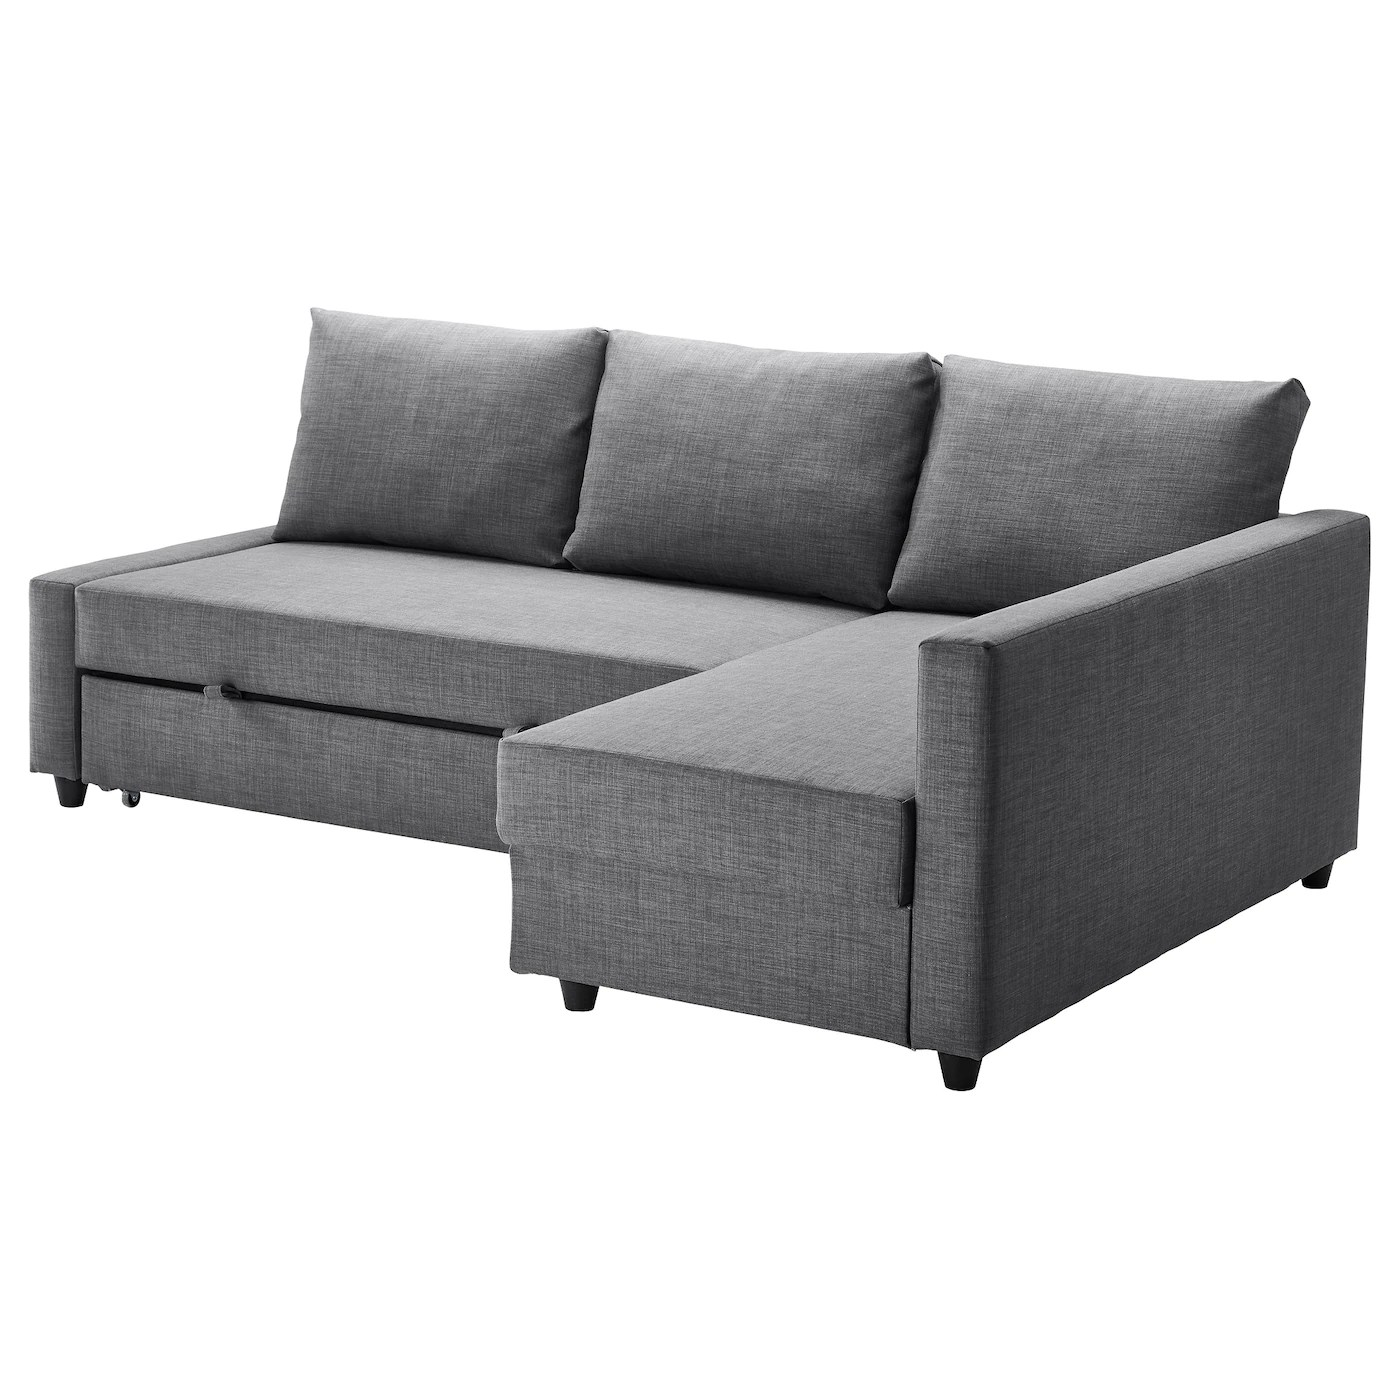 Klassische Sofas You Can Assemble Friheten Corner Sofa Bed With Storage Skiftebo Dark Grey